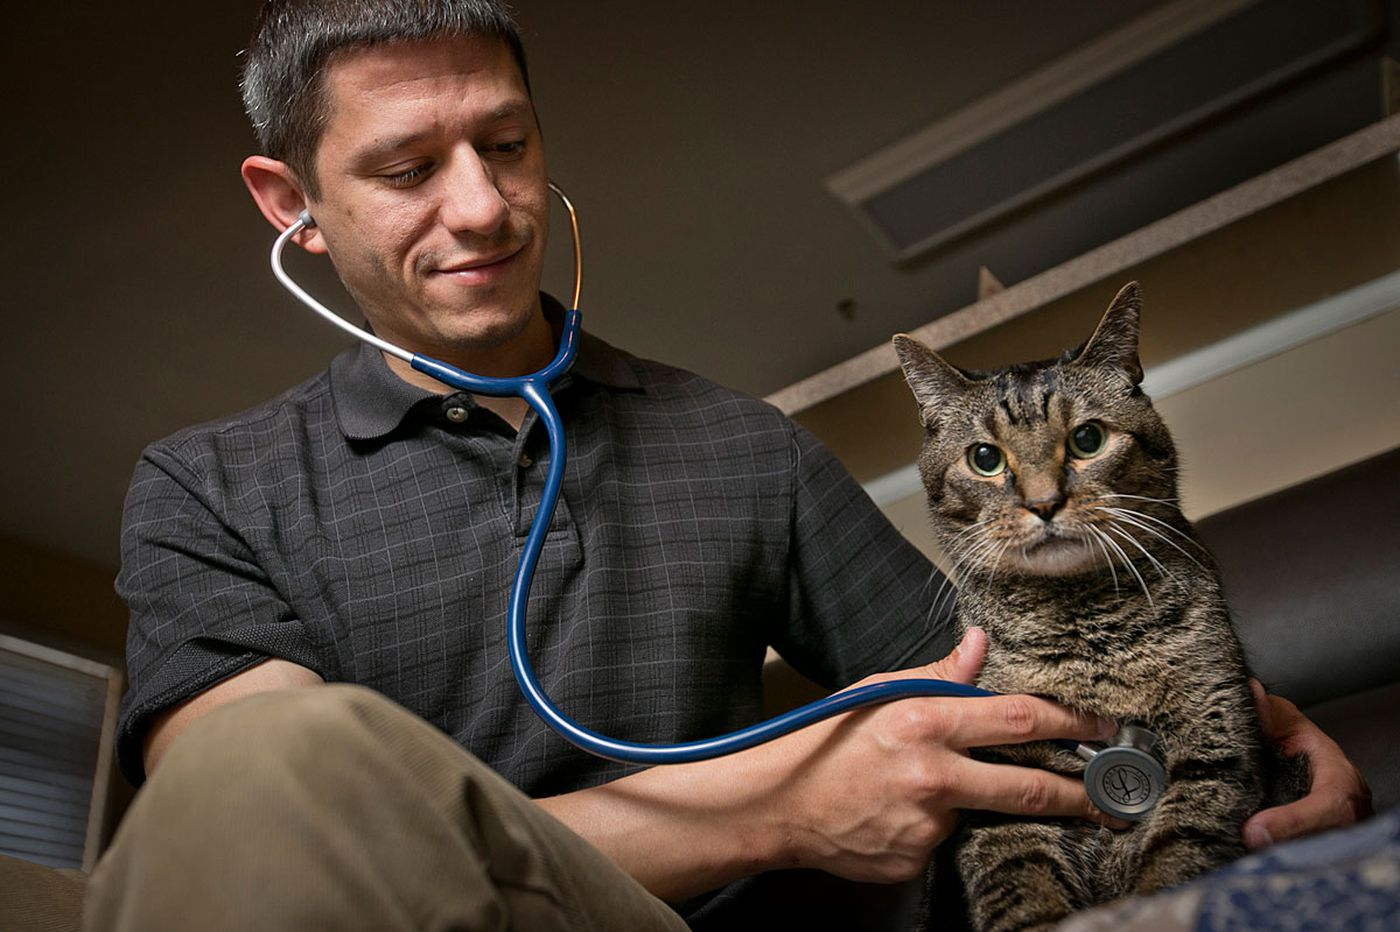 Lap of Love franchisees offer palliative veterinary care